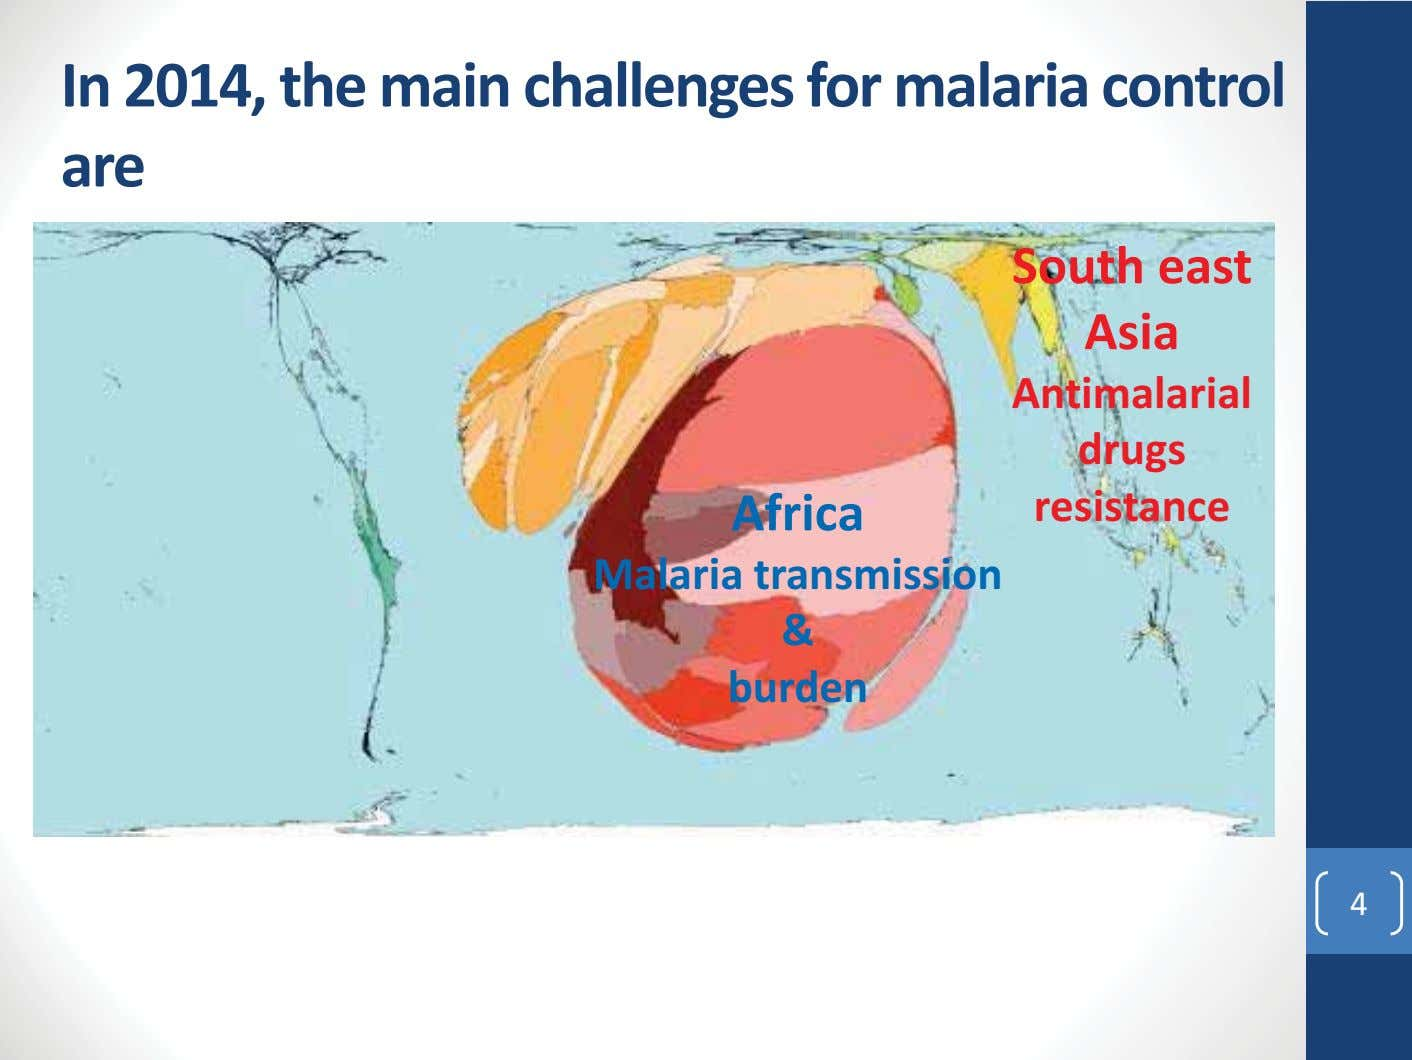 In 2014, the main challenges for malaria control are South east Asia Antimalarial drugs Africa